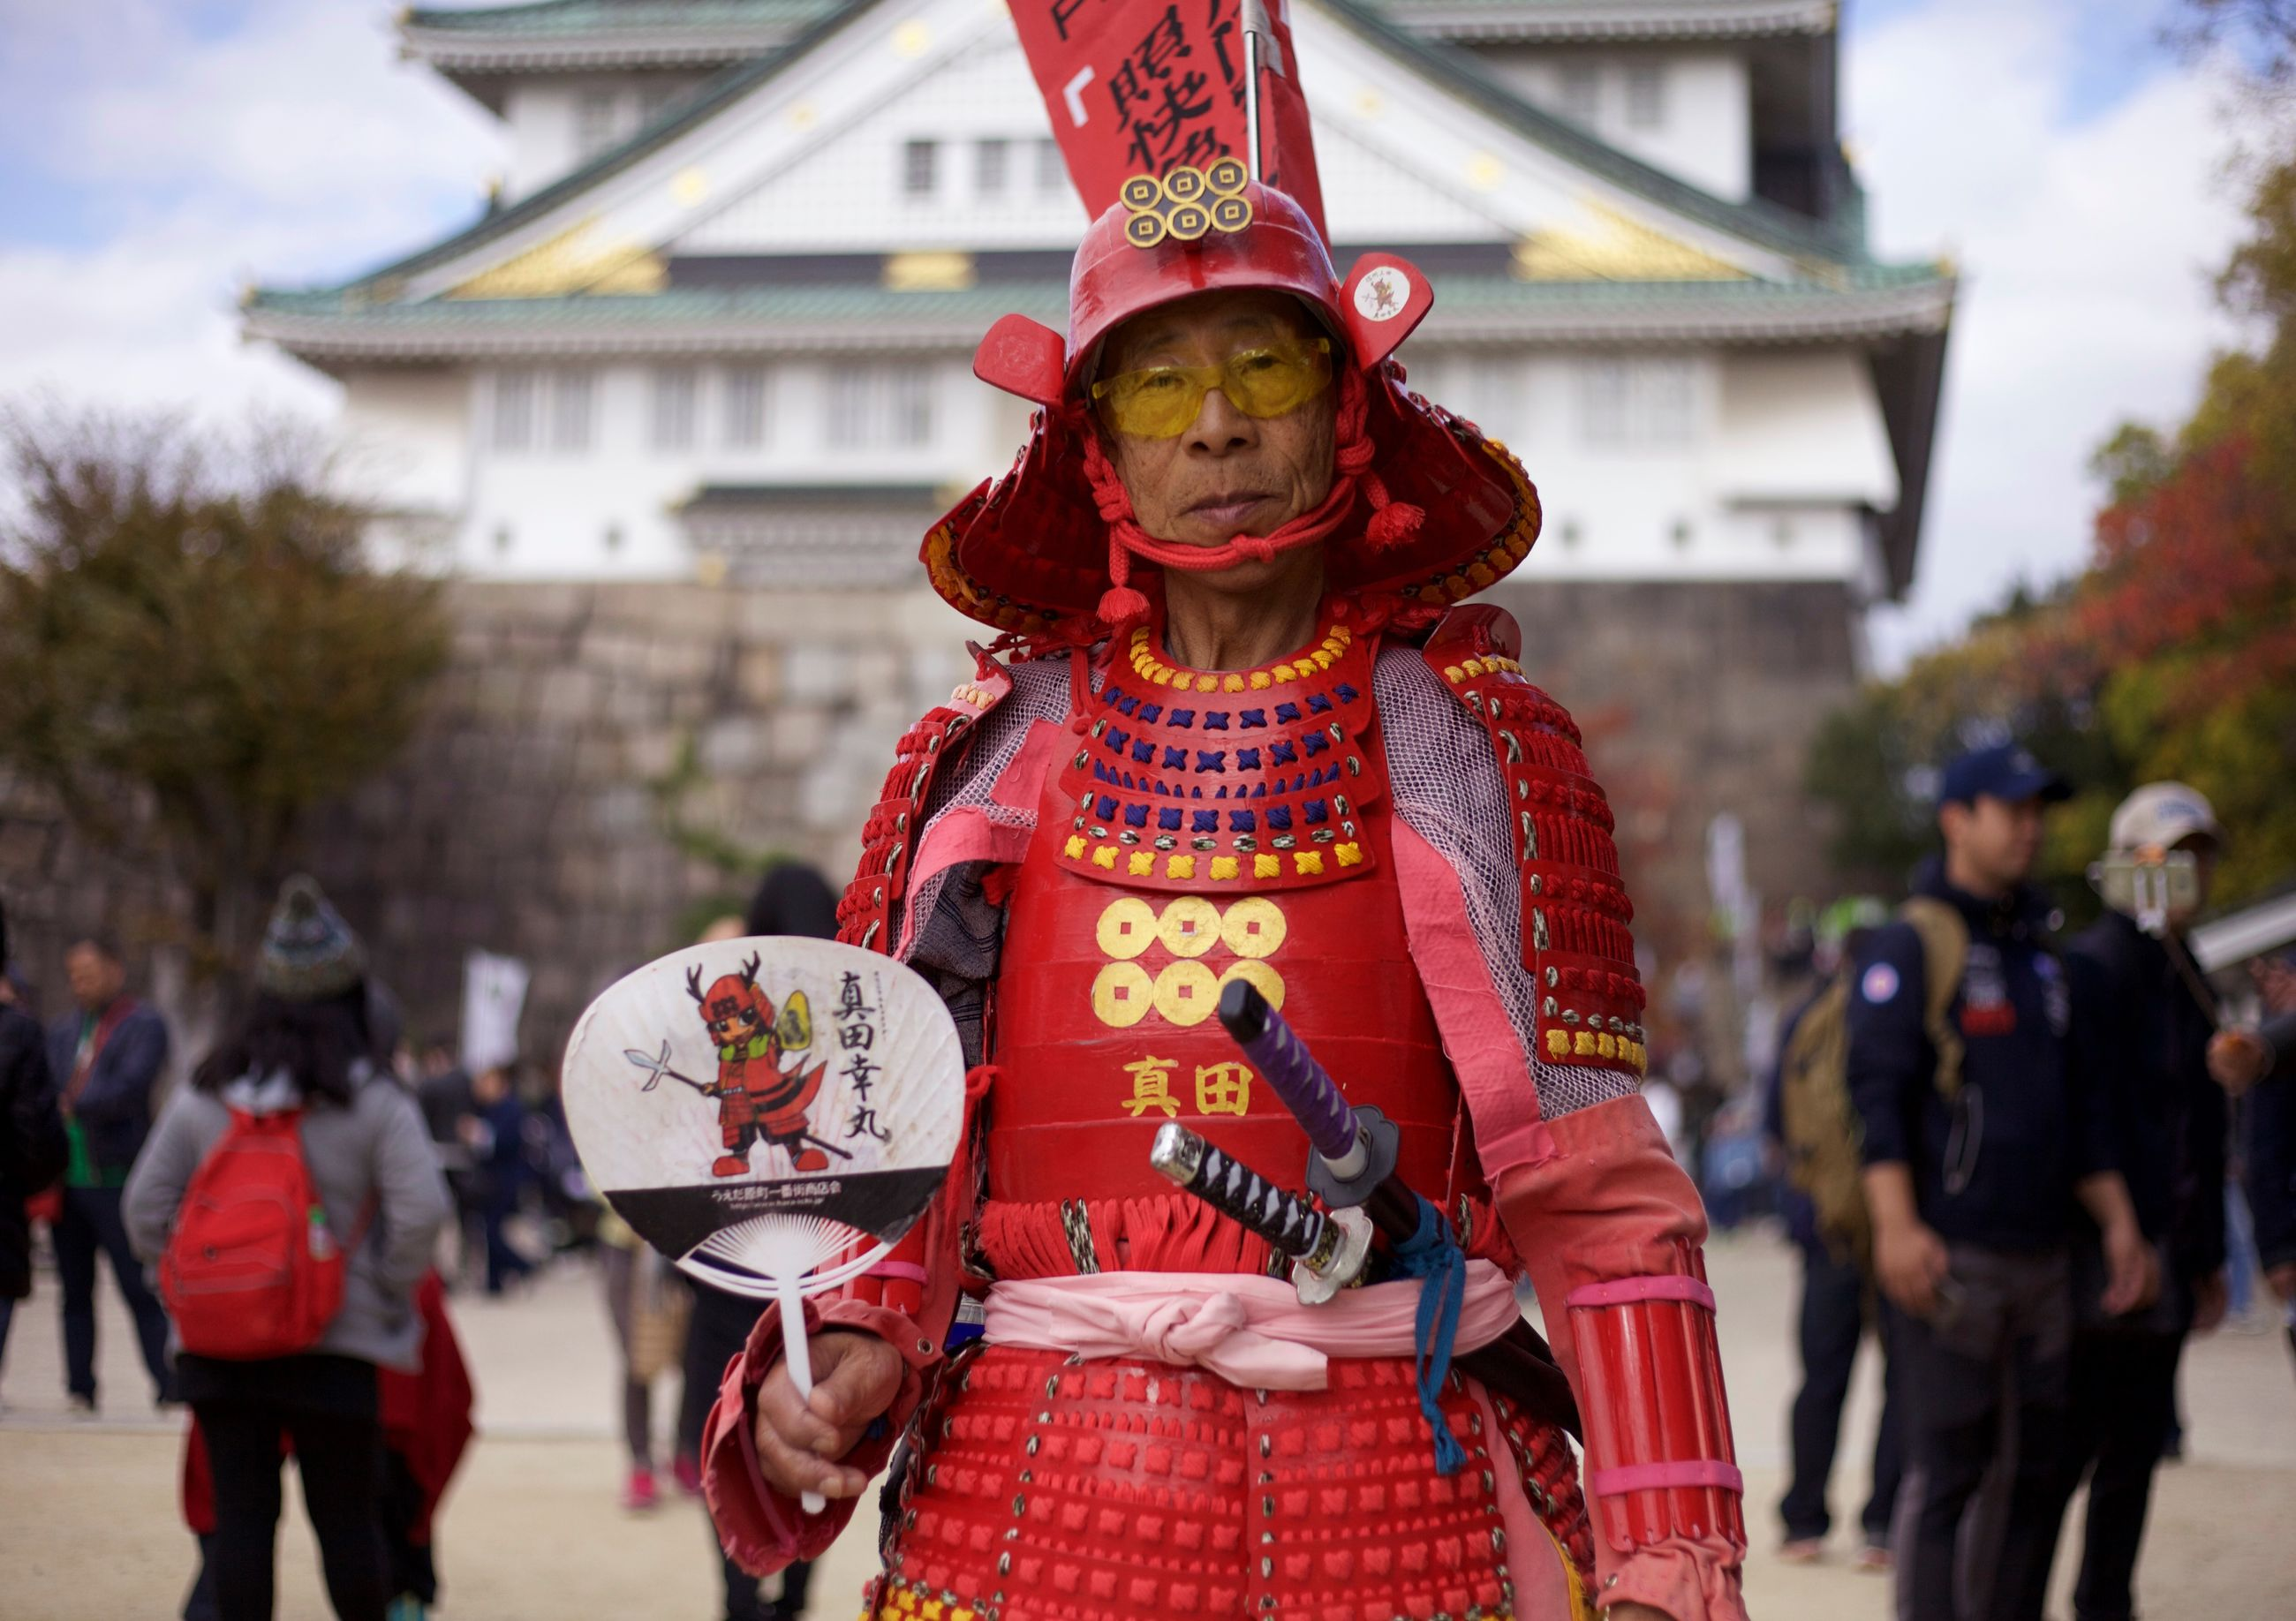 cultures, celebration, costume, mask - disguise, real people, tradition, focus on foreground, day, traditional festival, traditional dancing, outdoors, men, women, stage costume, chinese dragon